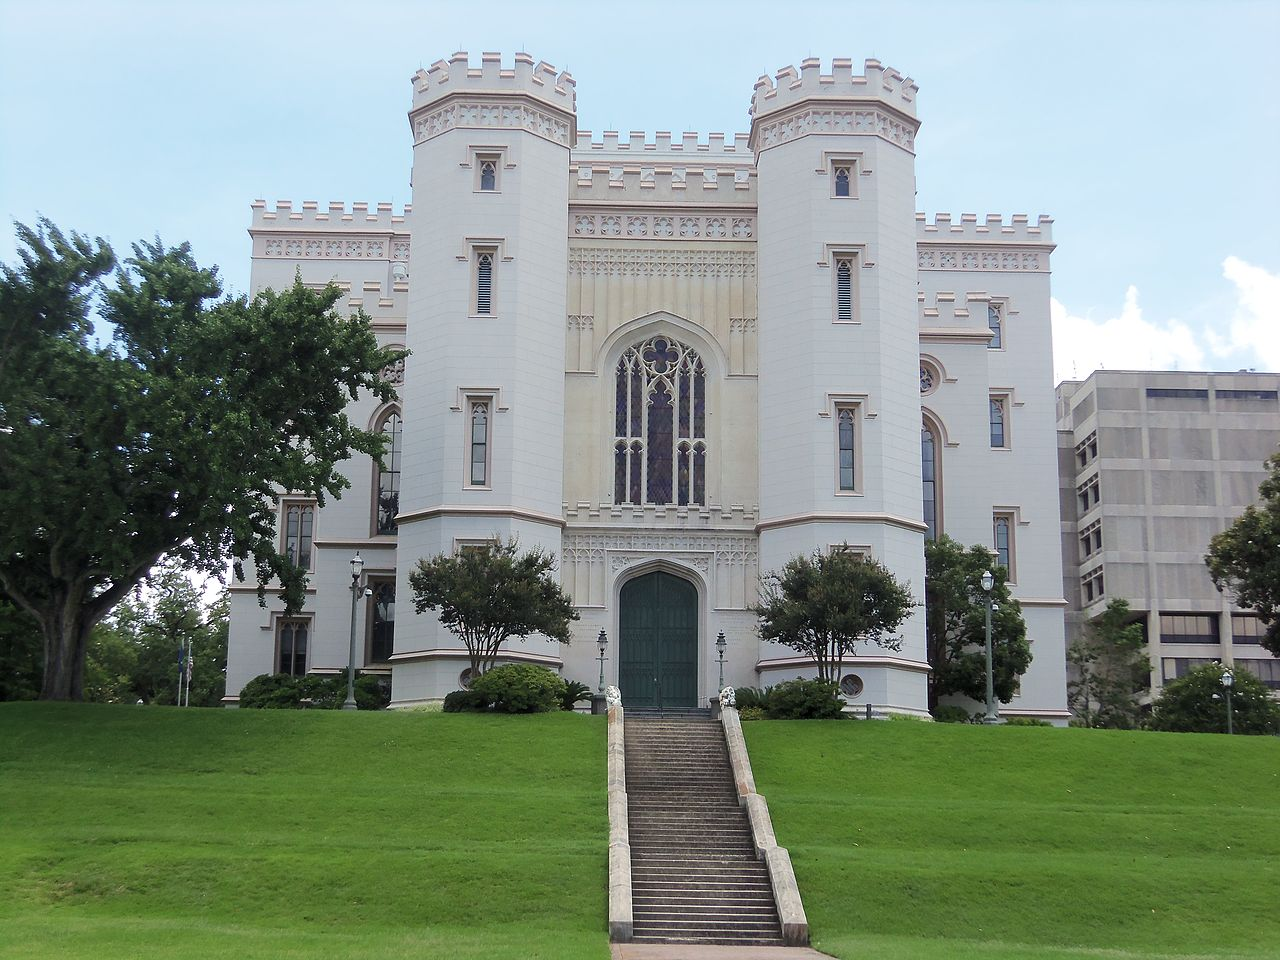 Louisiana's Old State Capitol, Baton Rouge, LA